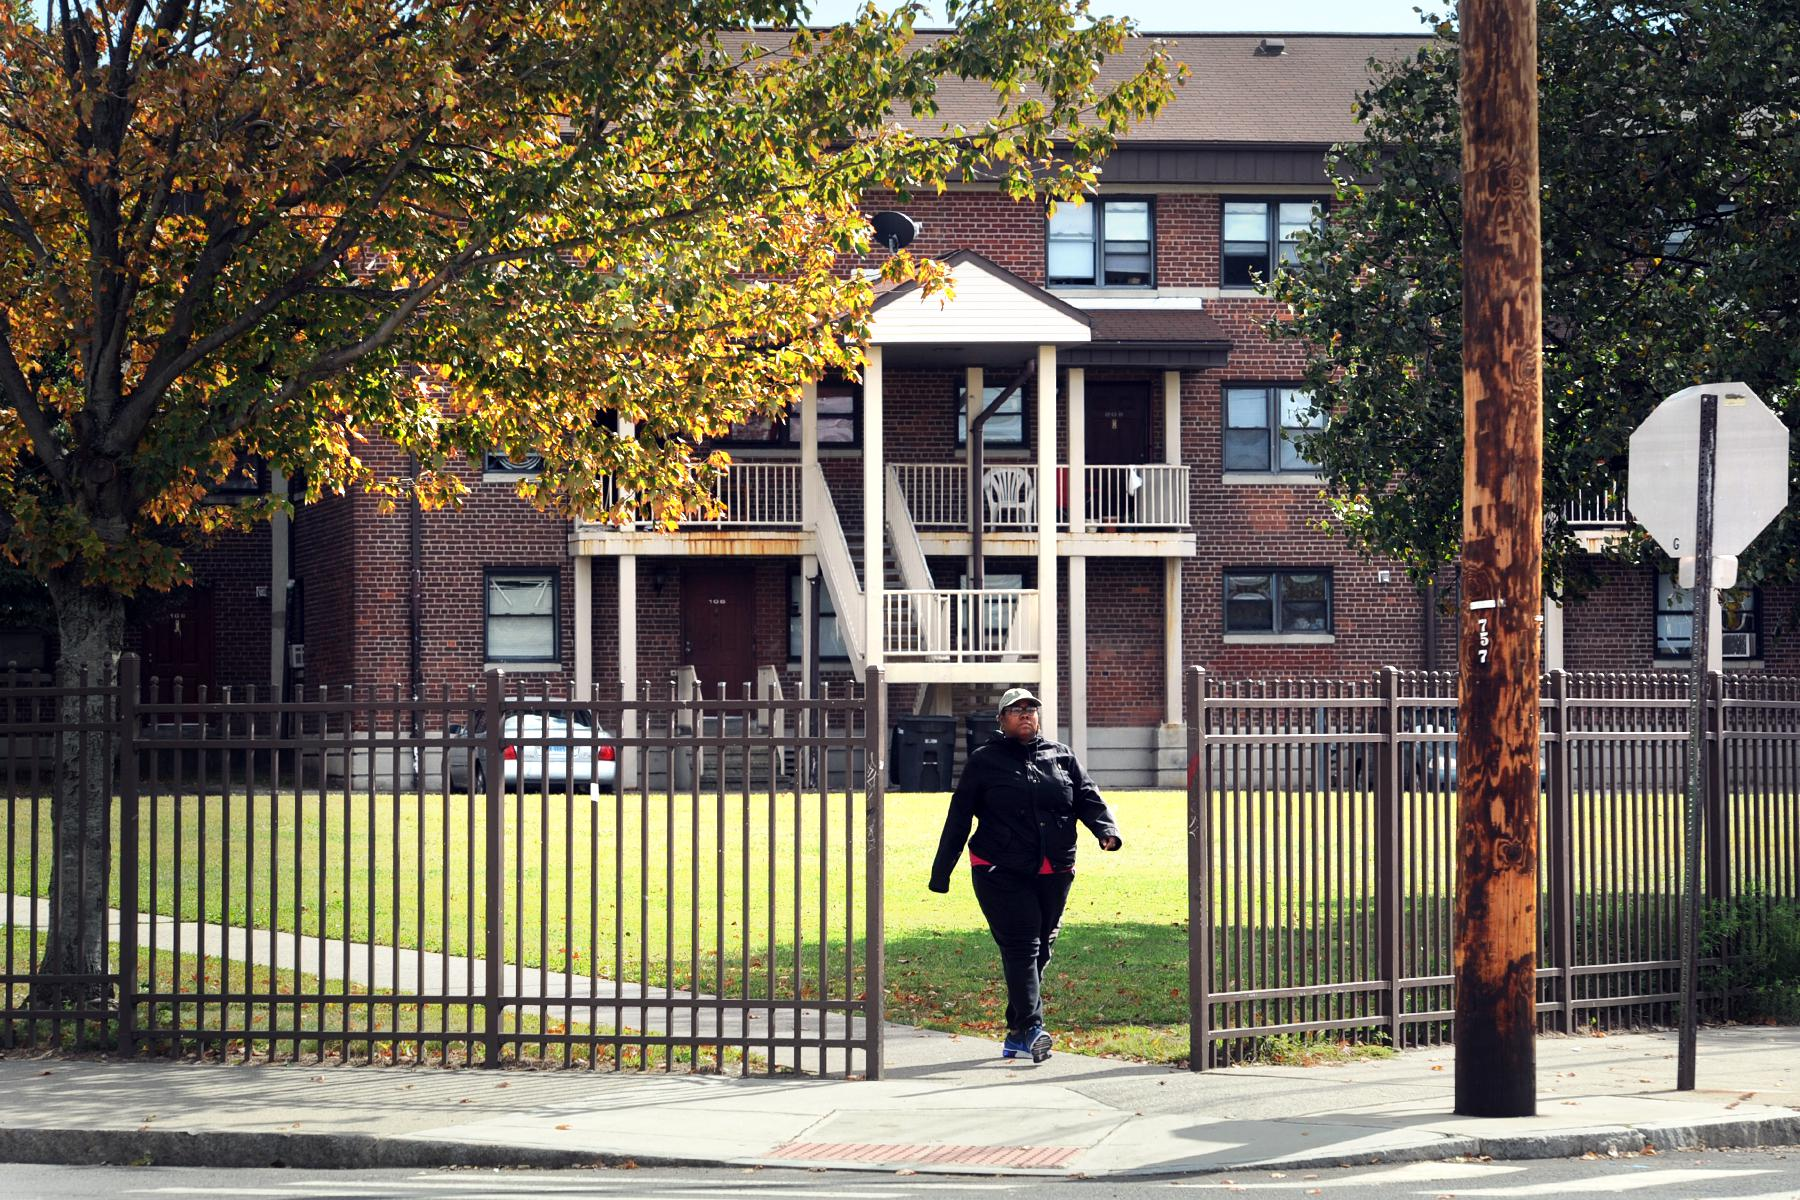 Some P.T. Barnum apartments in Bridgeport without power